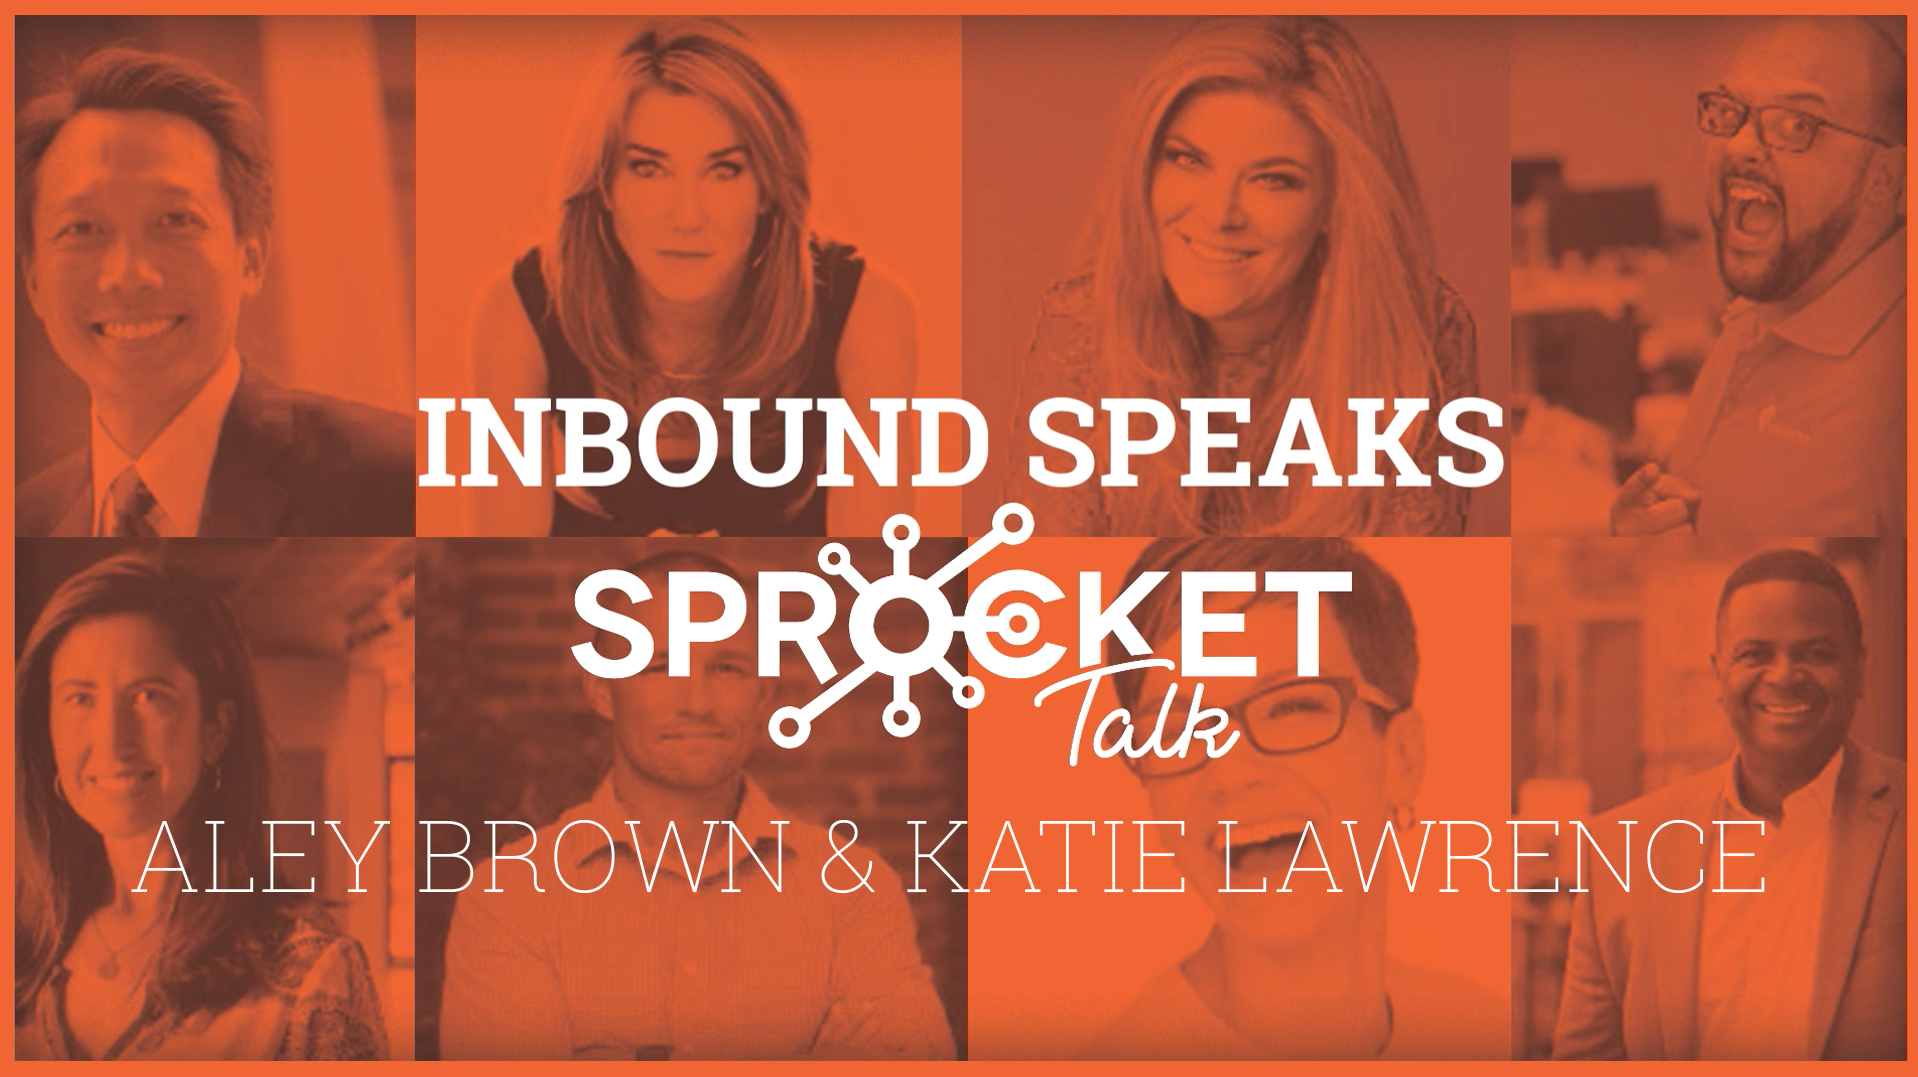 Aley Brown & Katie Lawrence #Inbound19